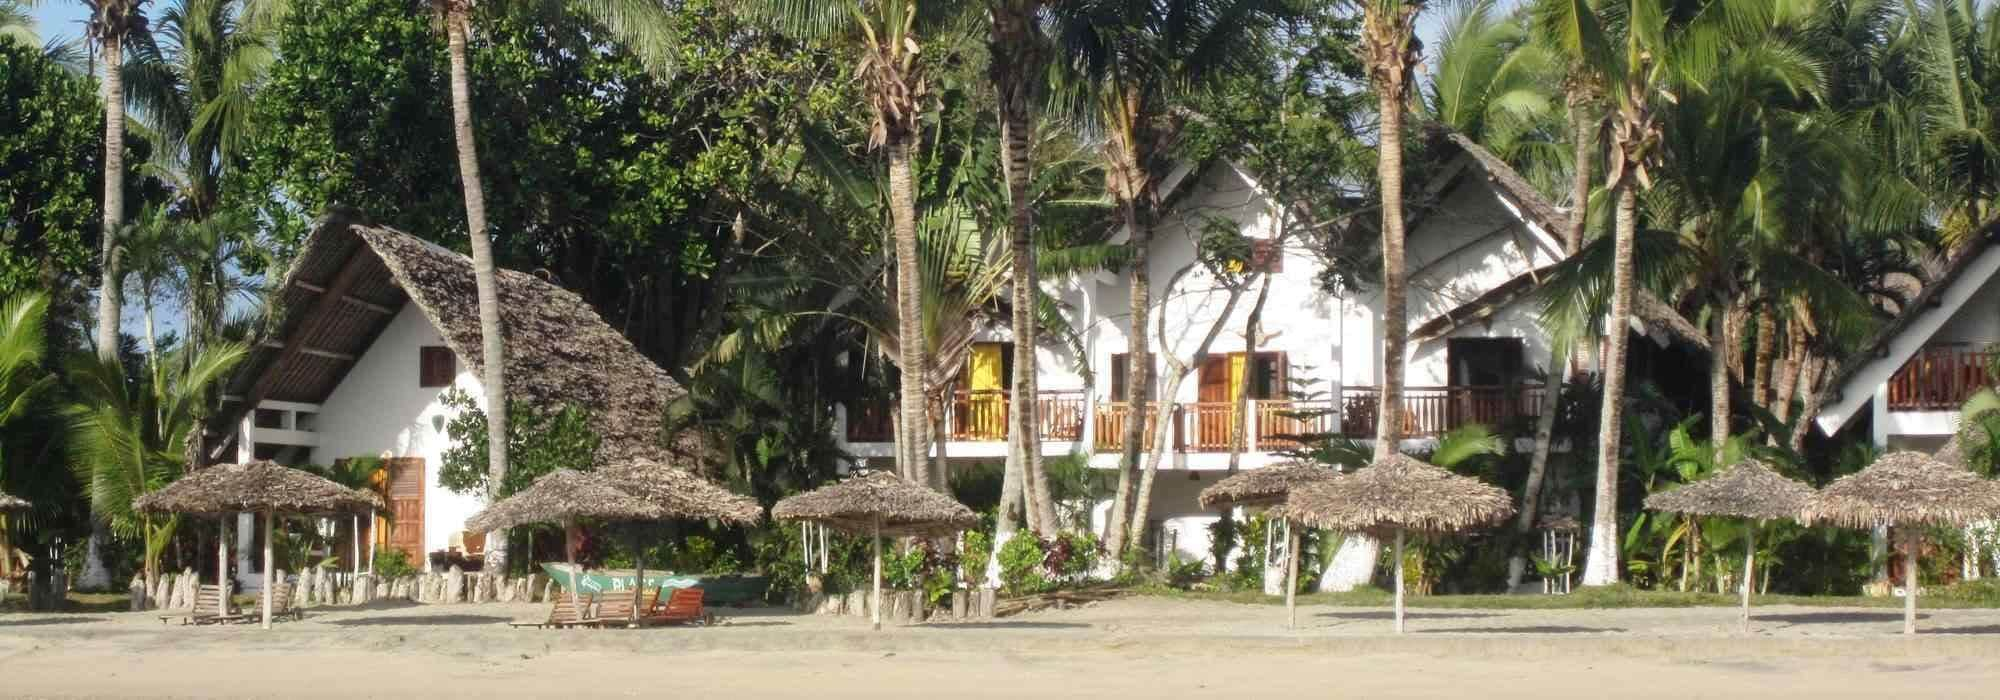 Hôtel Lodge La Pirogue Mahambo, Analanjirofo